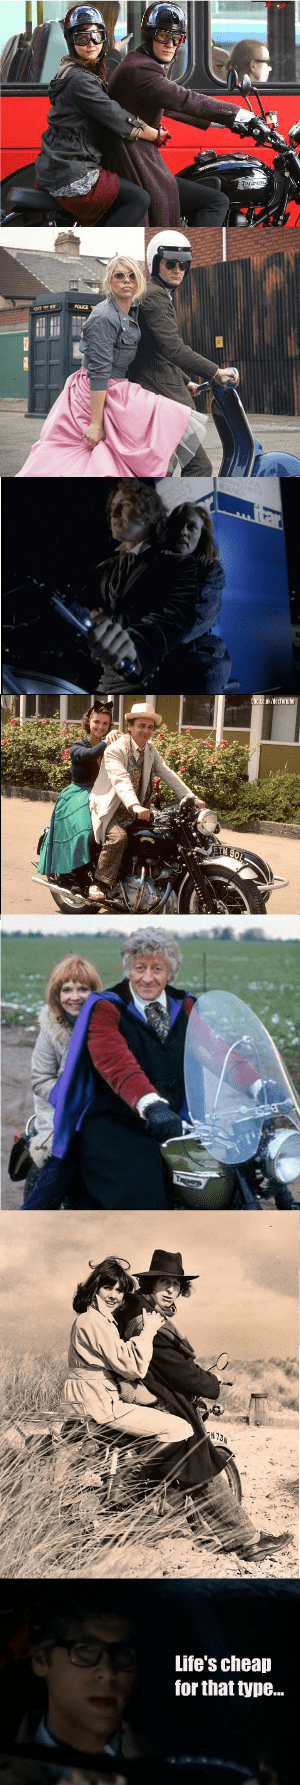 motorcycles doctor who bbc - 7515271936